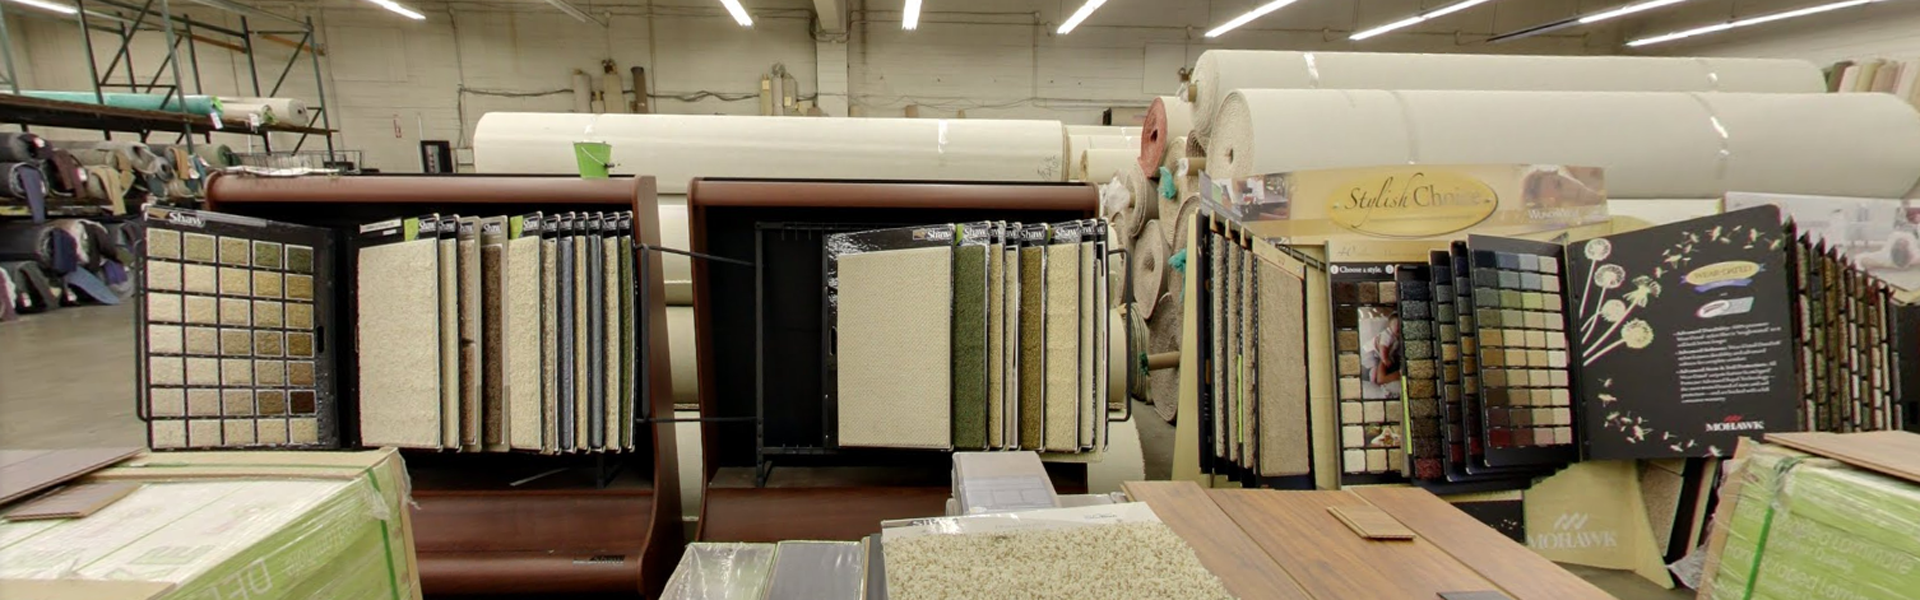 Carpet Depot AZ - Discount Carpet and Flooring Warehouse